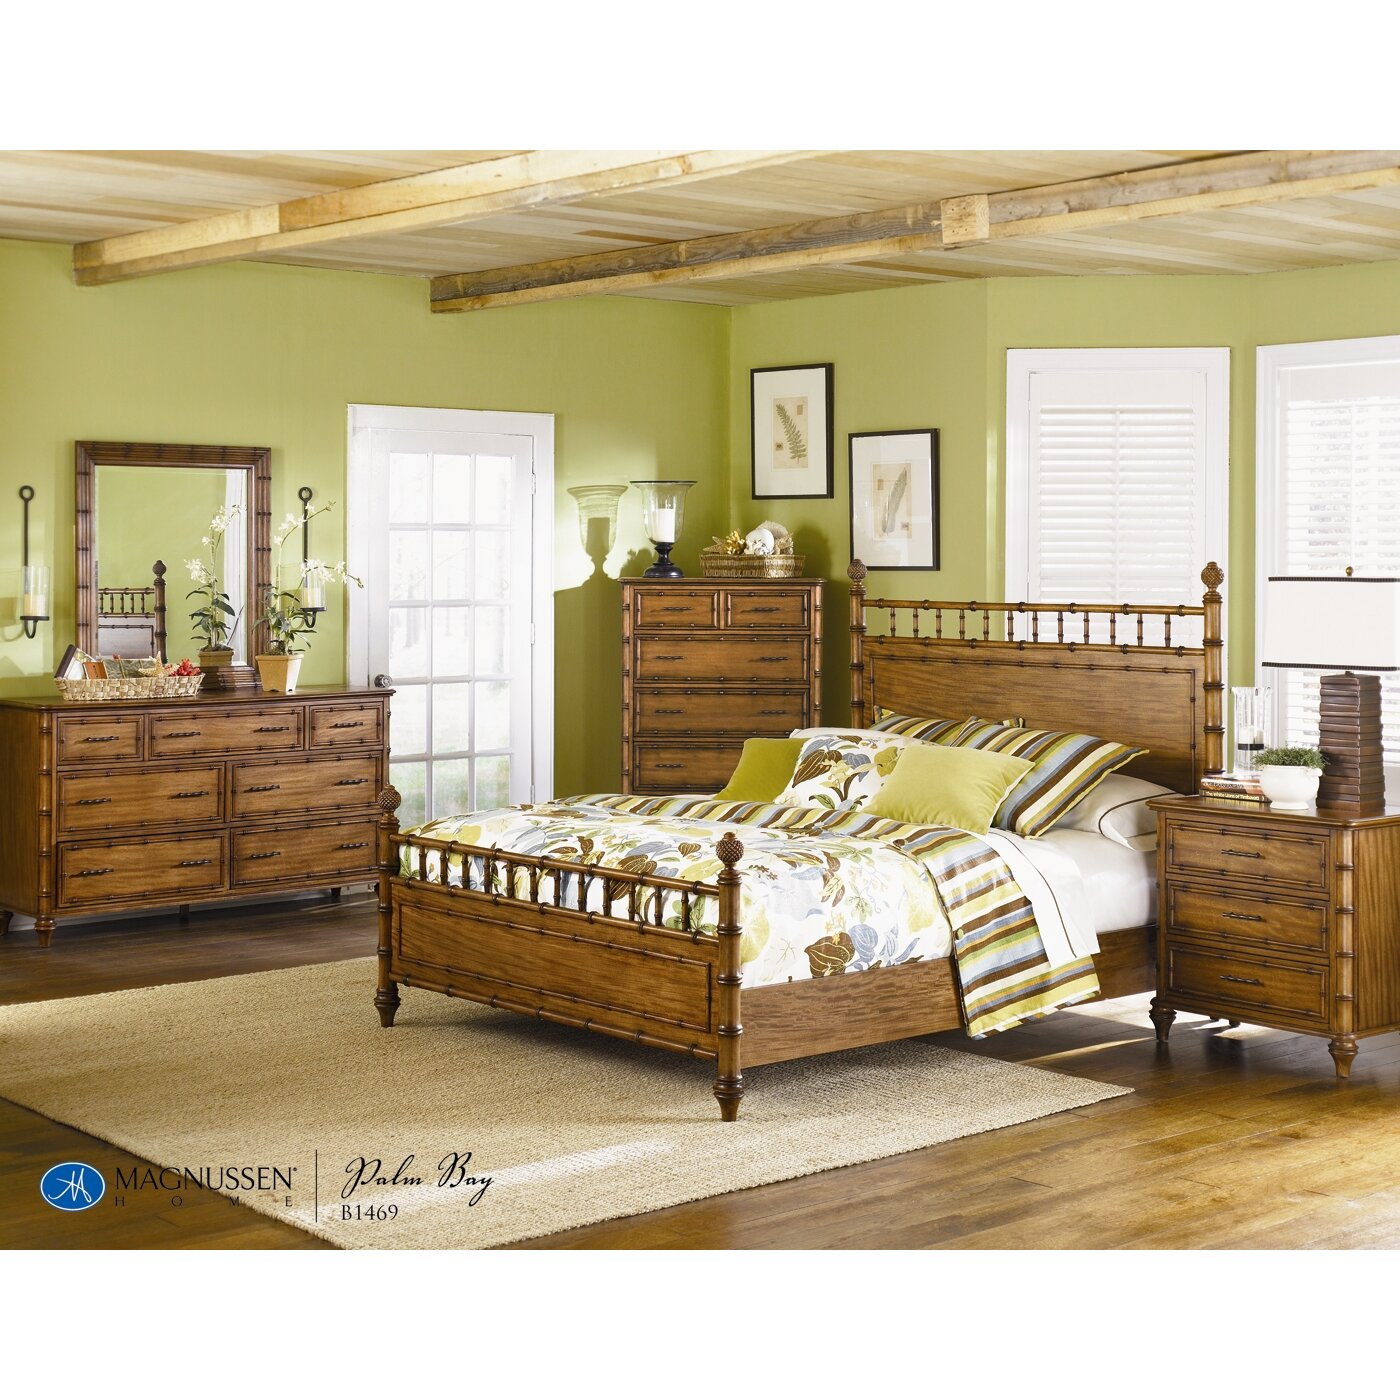 Magnussen Palm Bay Wood Headboard Reviews Wayfair